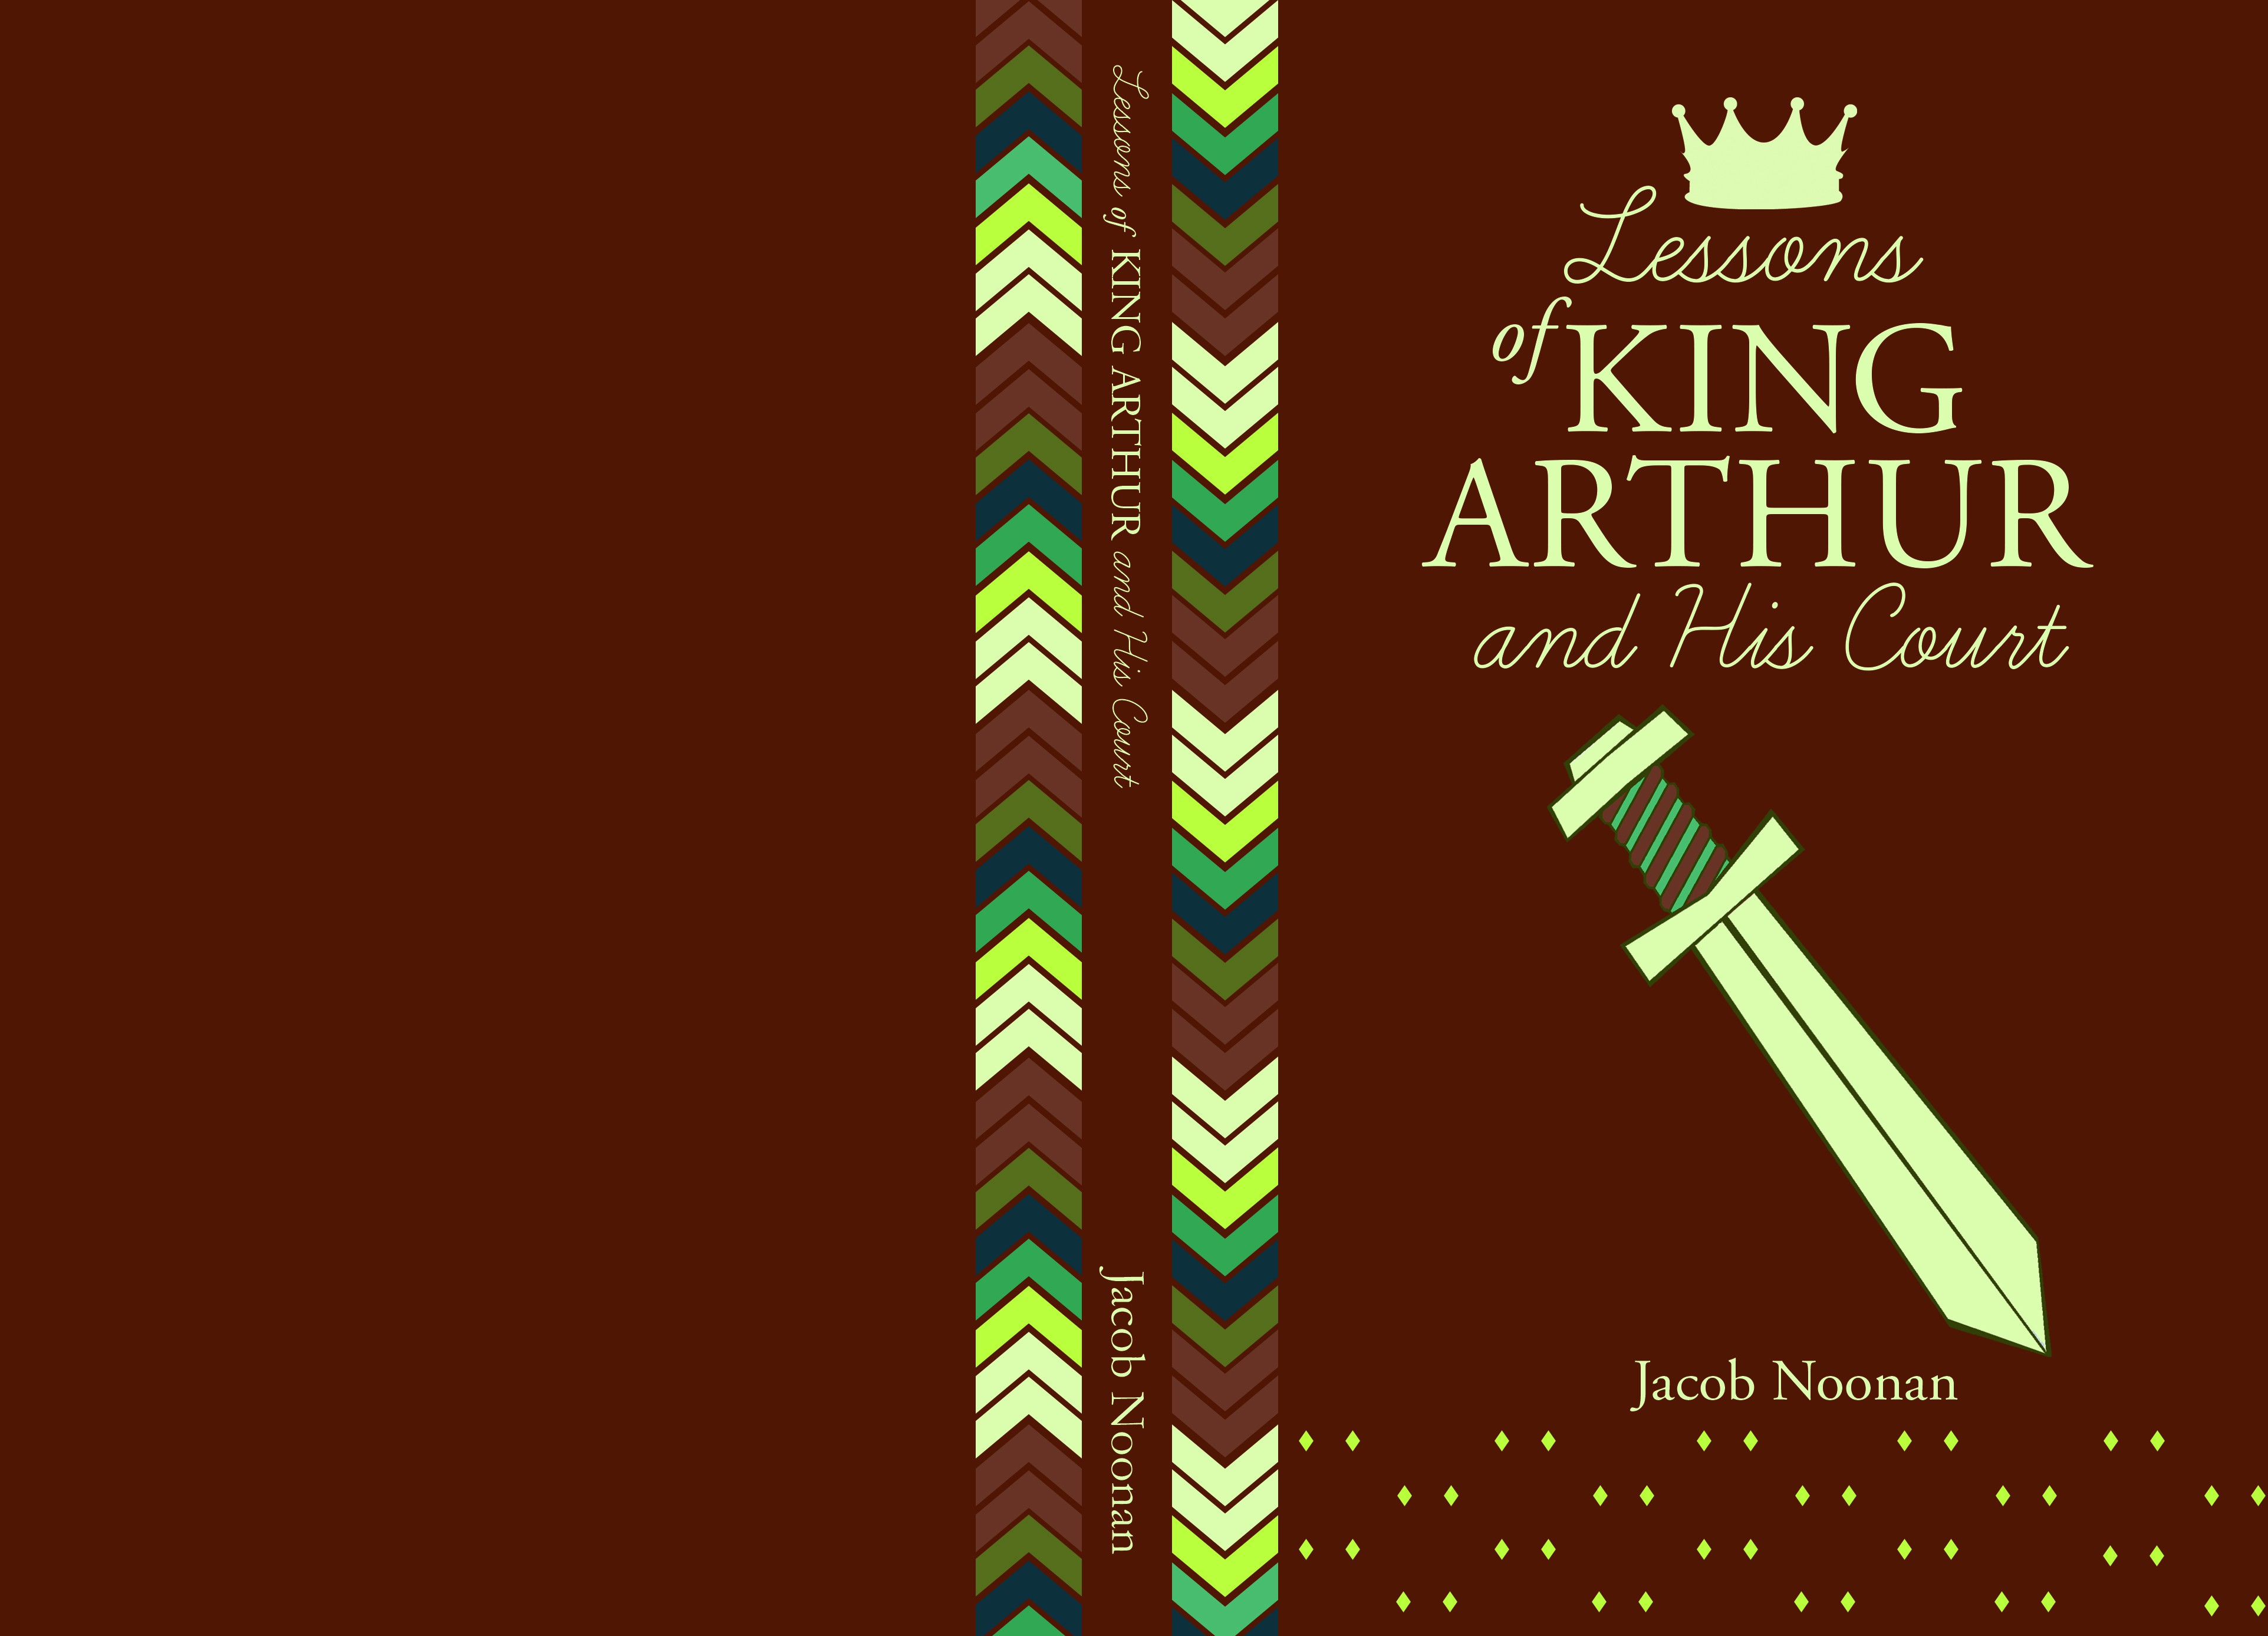 King Arthur and His Court